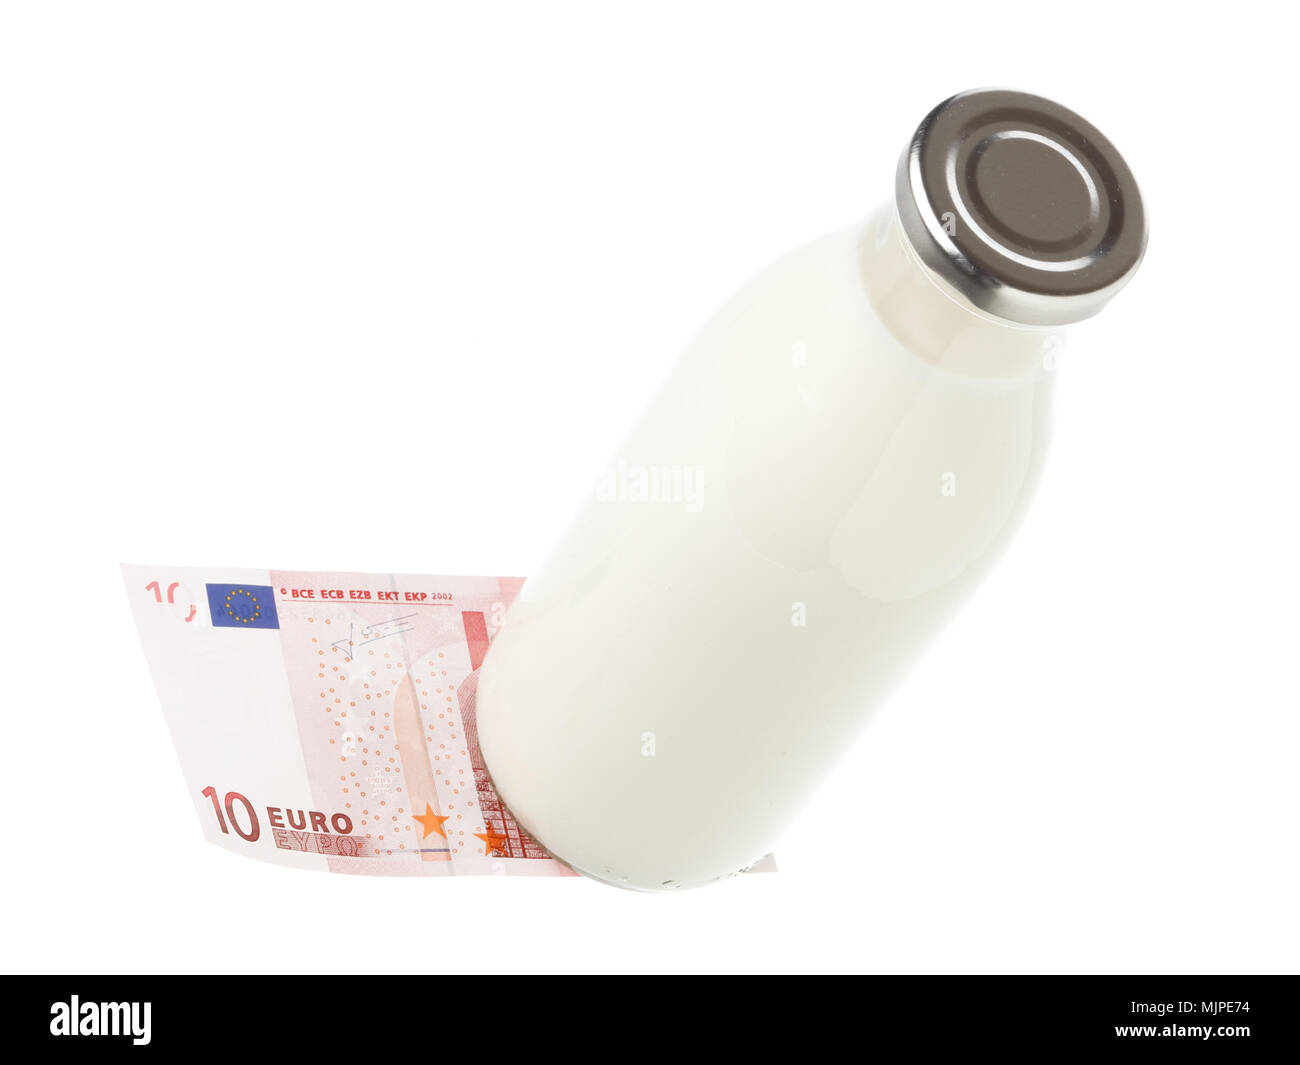 One classic full milk bottleon an ten Euro banknote isolated on white. - Stock Image